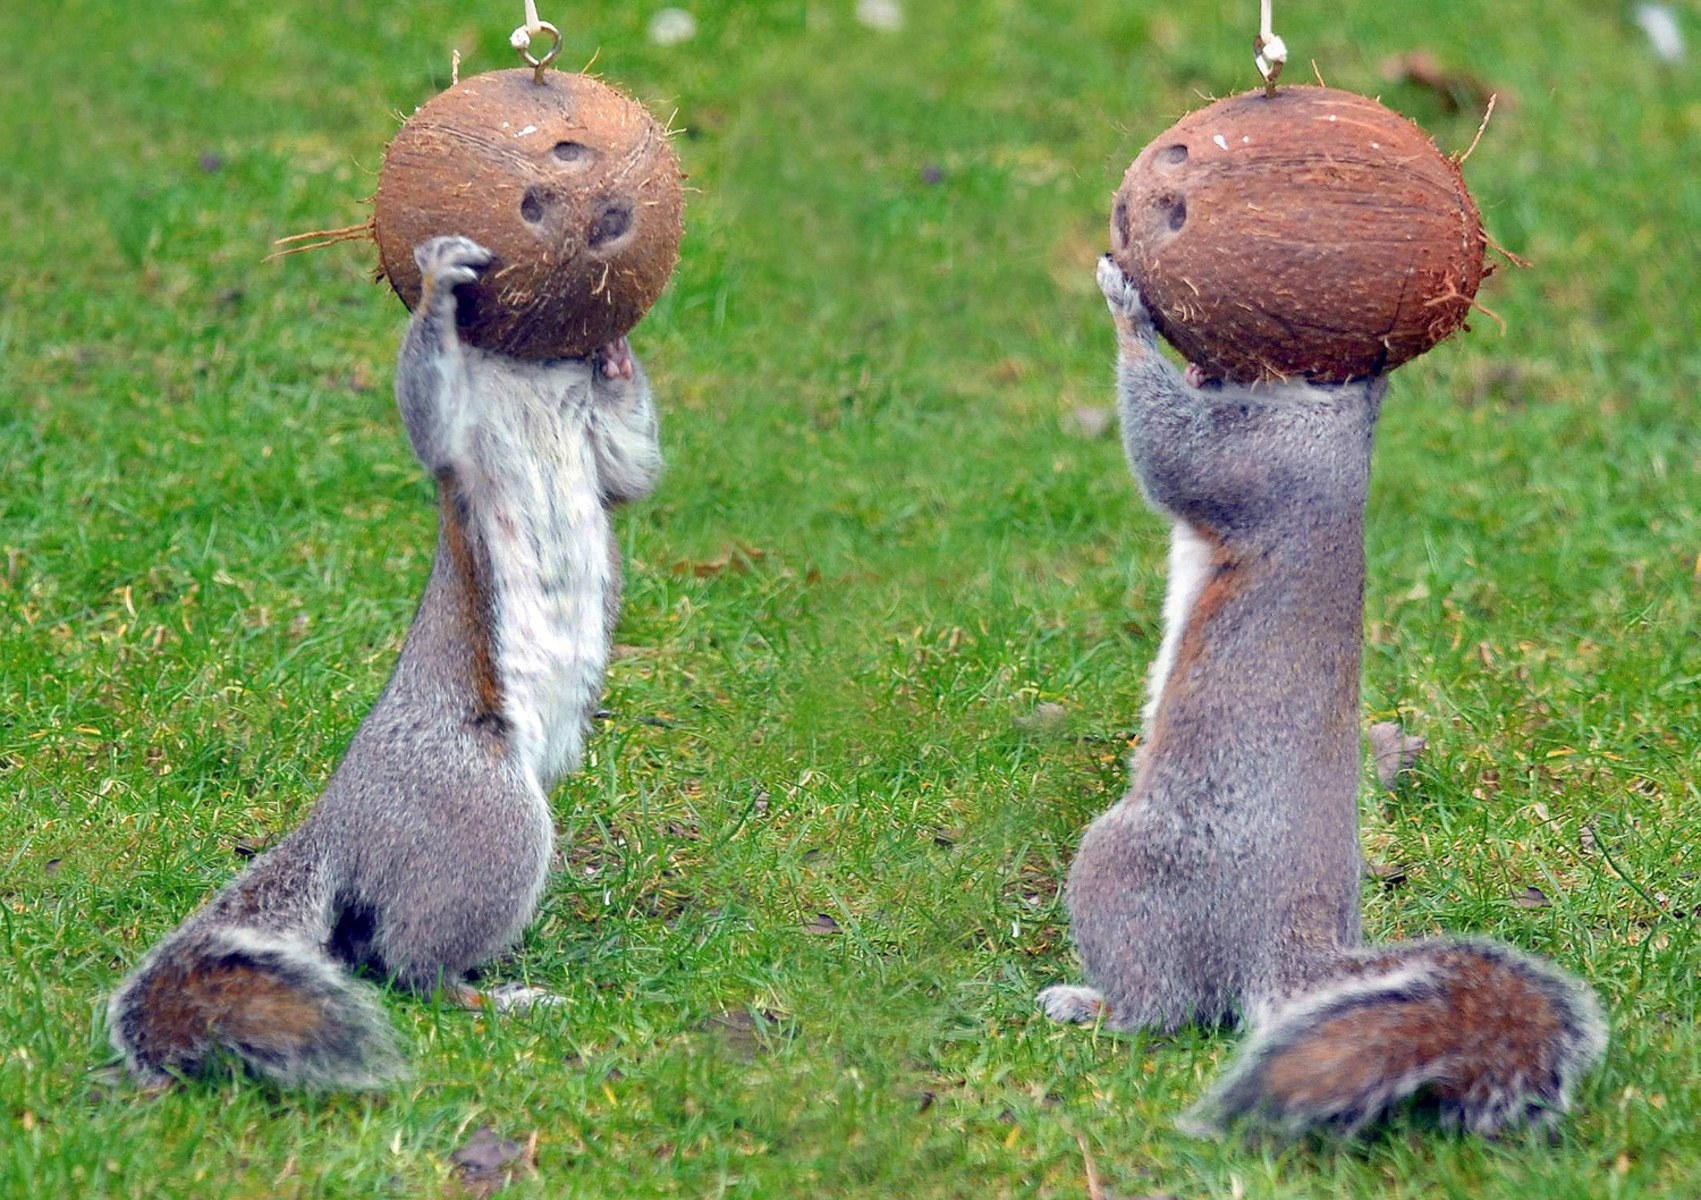 Image: Squirrels Nuts for Coconuts